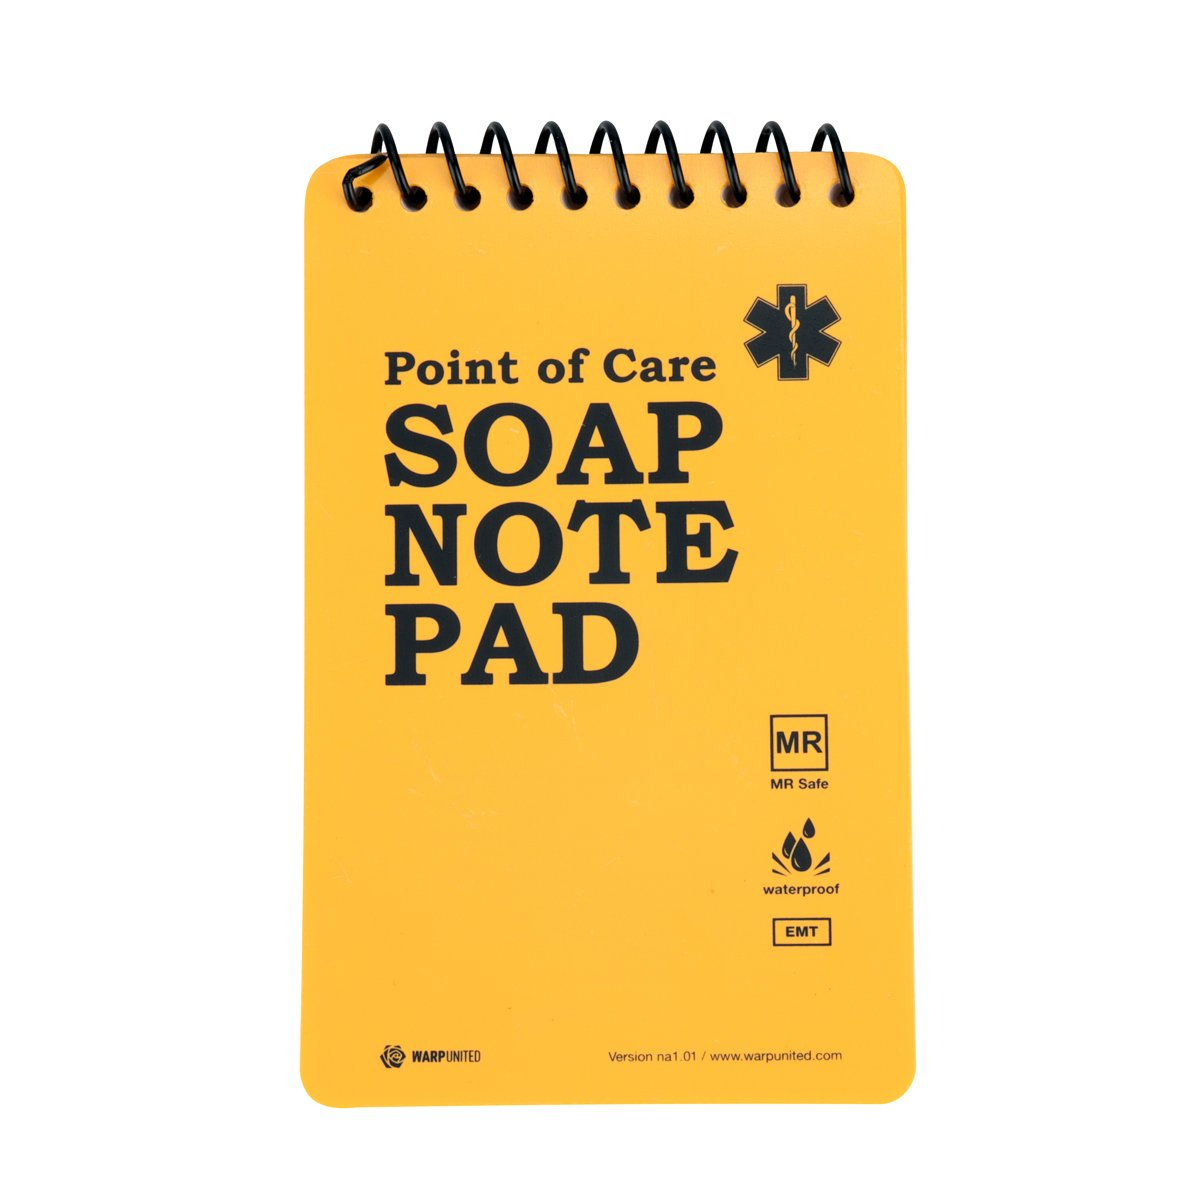 Full Waterproof EMT Point of Care SOAP Note Notepad 6″ x 3-3/4″ Version na1.03